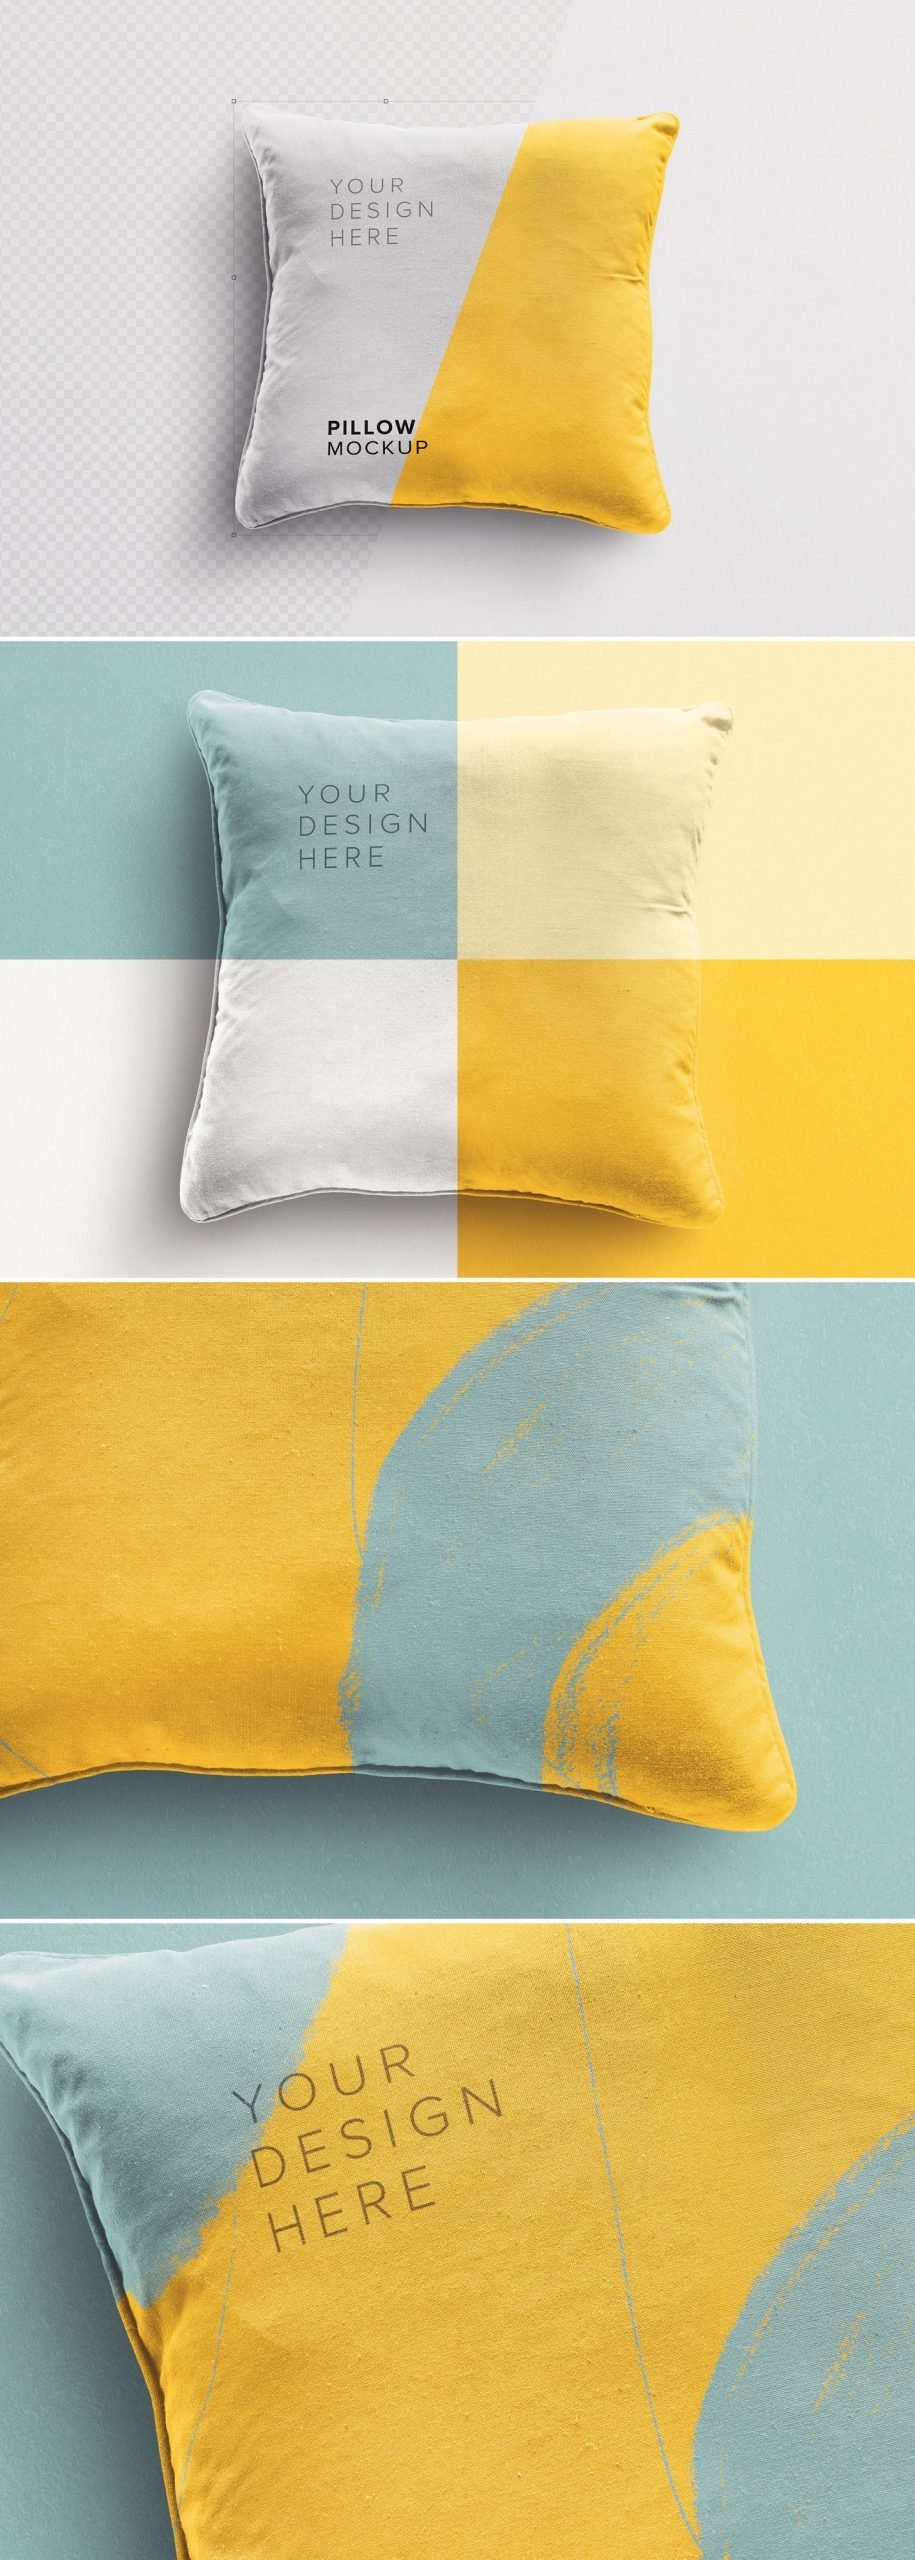 pillow mockup preview1 1 scaled